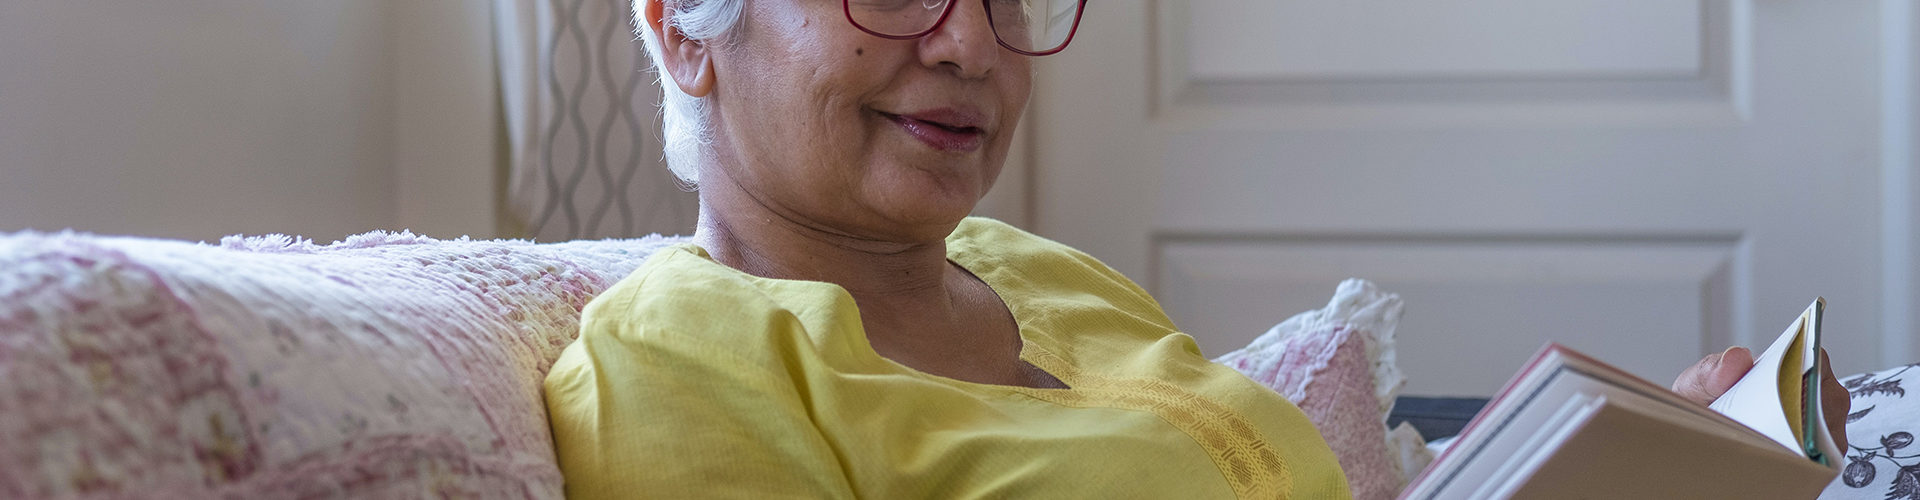 advice for moving in an elderly parent